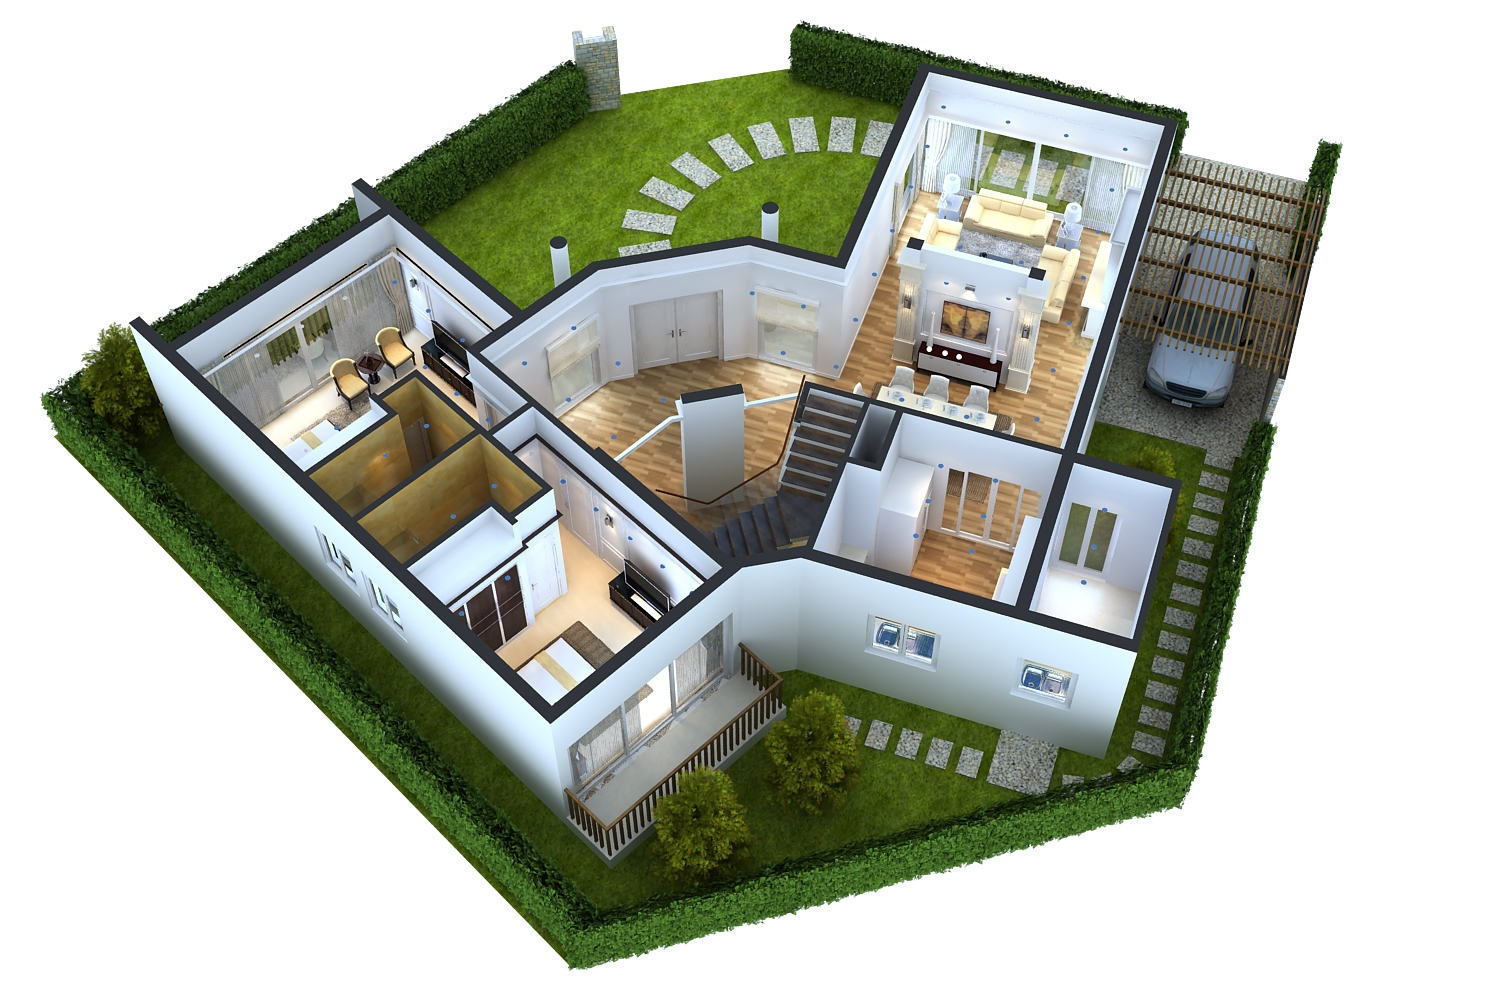 Detailed House Floor 1 Cutaway 3D Model